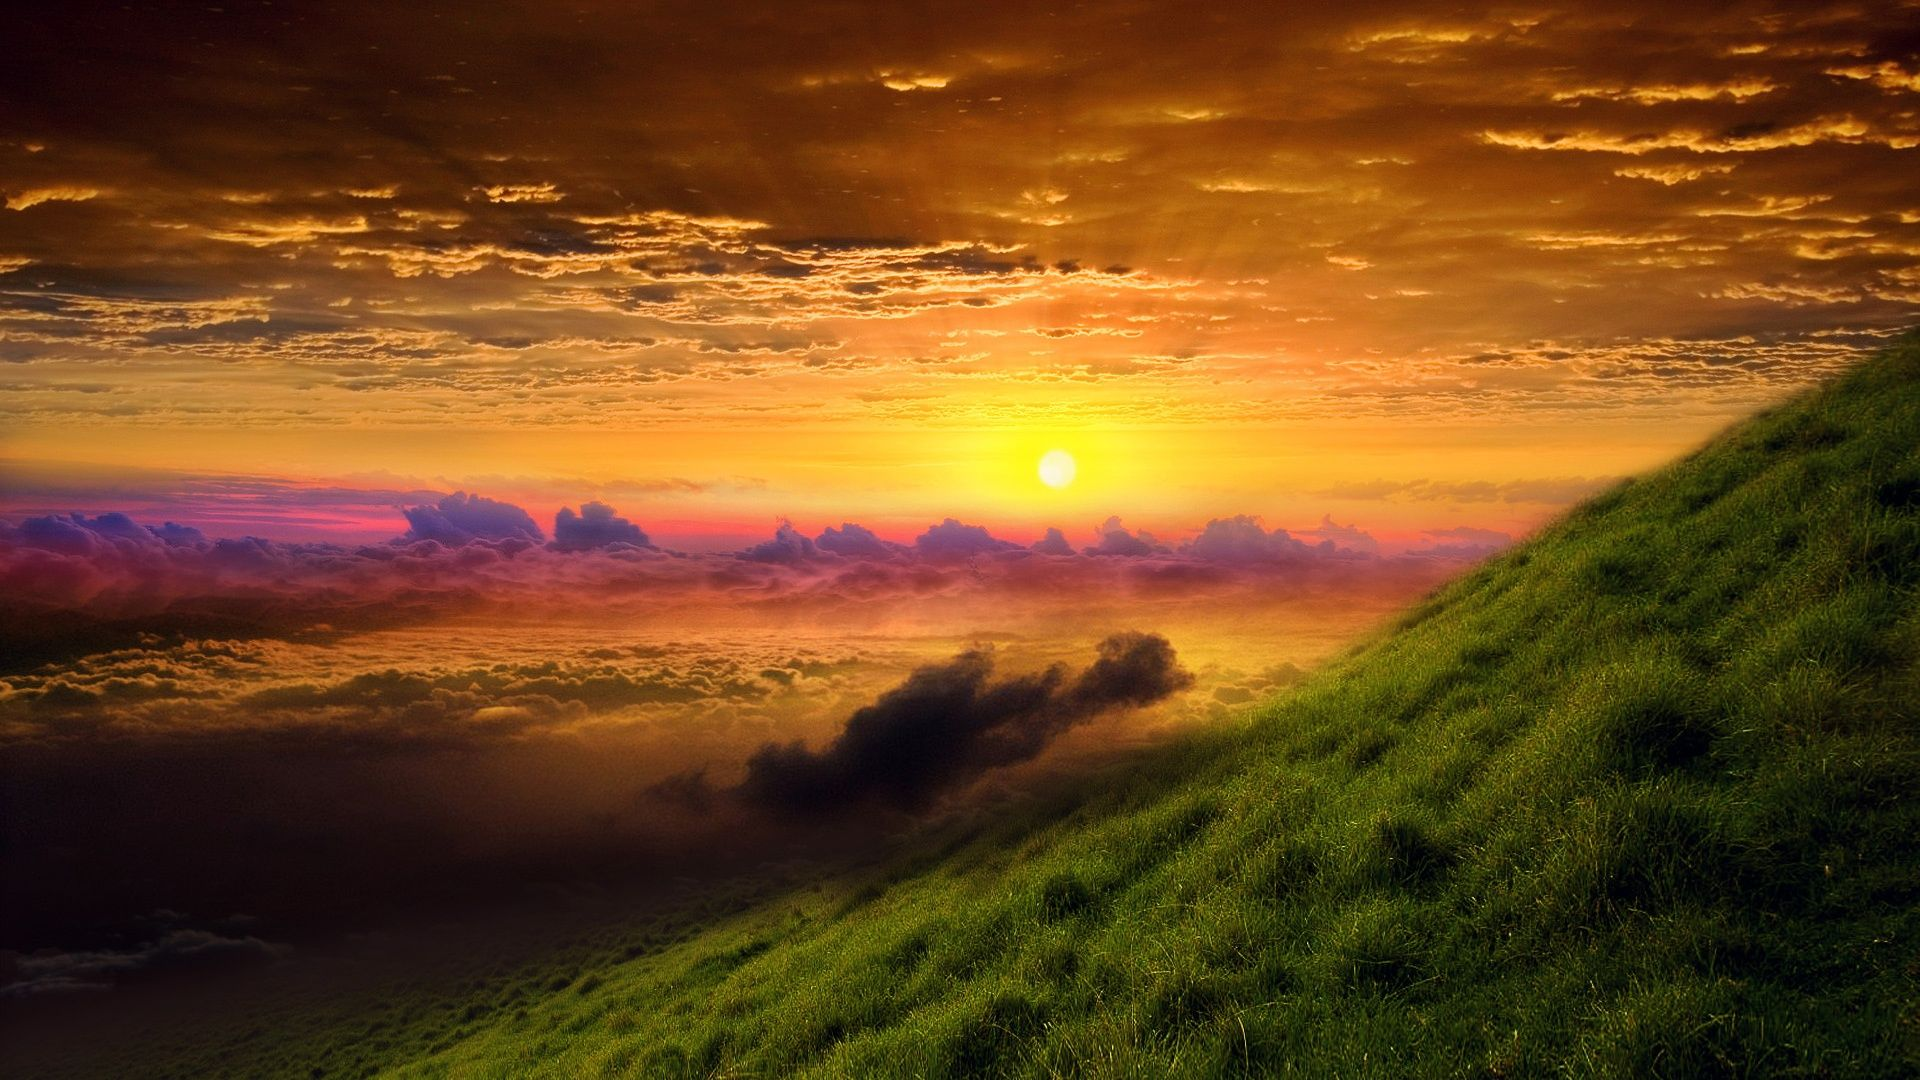 HD Nature Wallpaper with a Picture of Sunrise Glory in